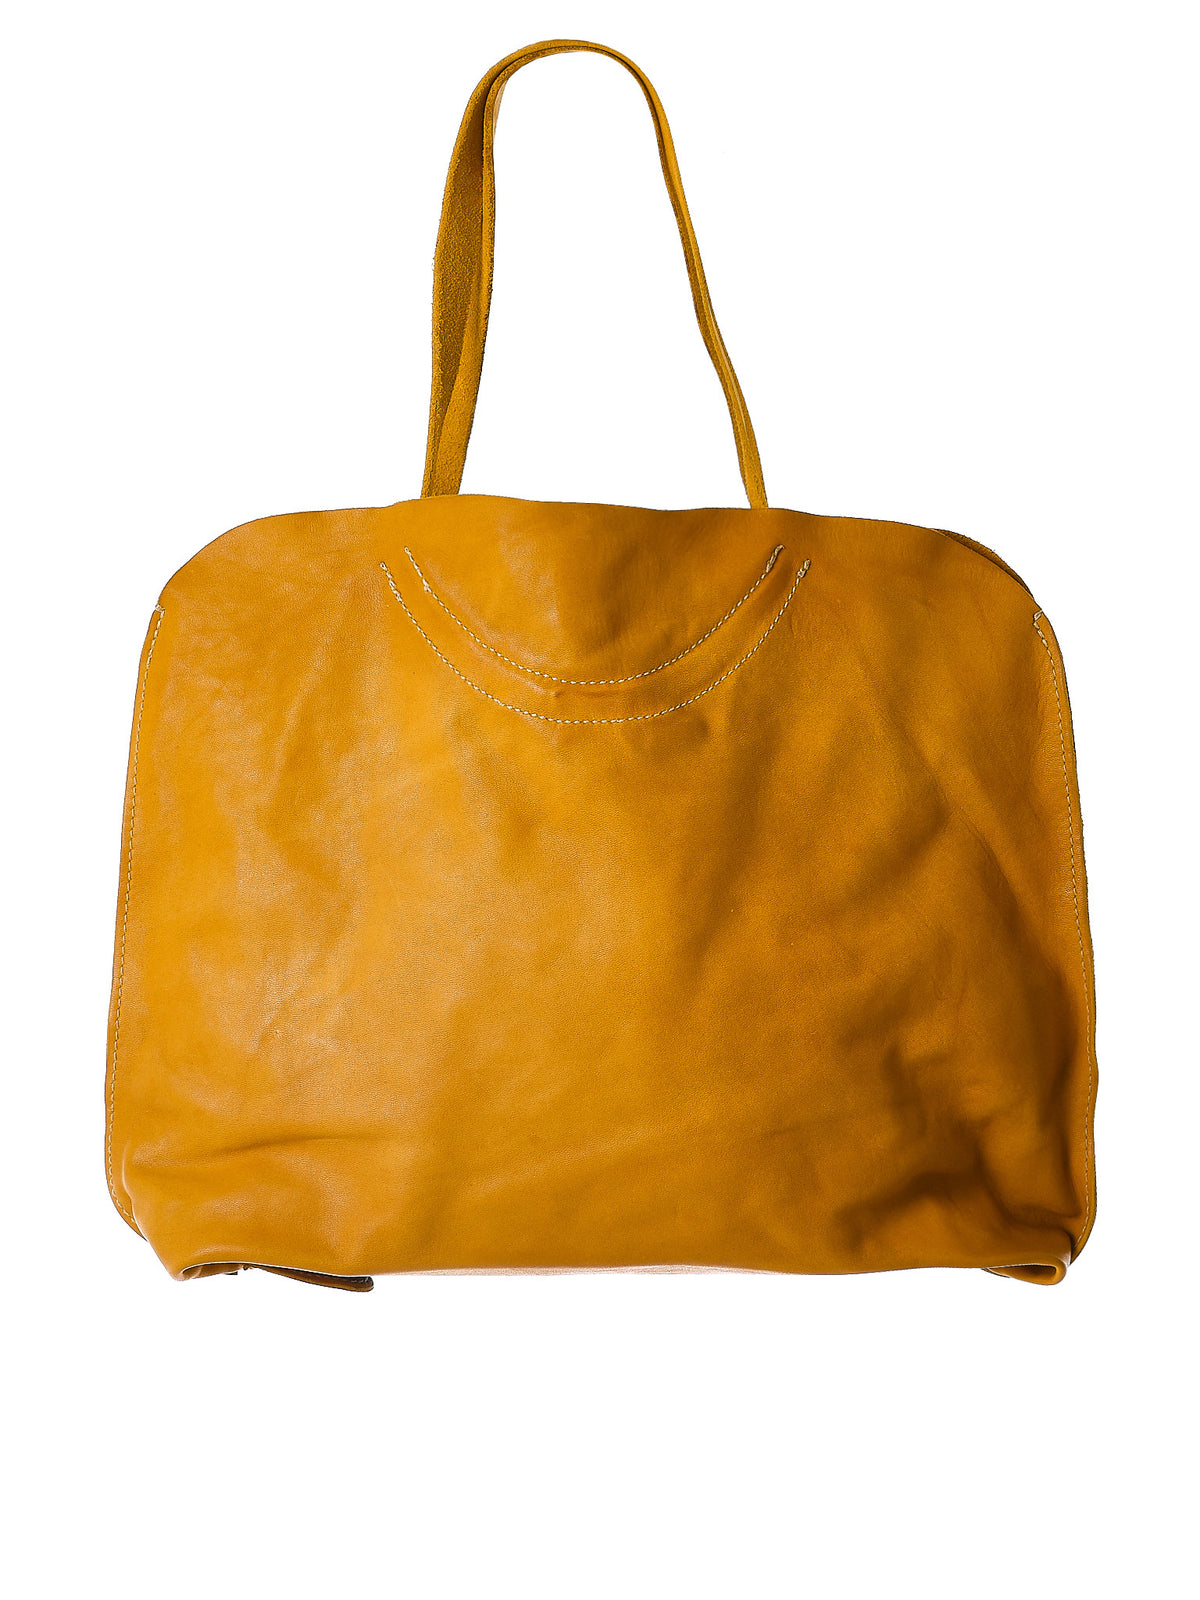 Object-Dyed Leather Tote (B10-SOFT-HORSE-FG-CV29T) - H. Lorenzo